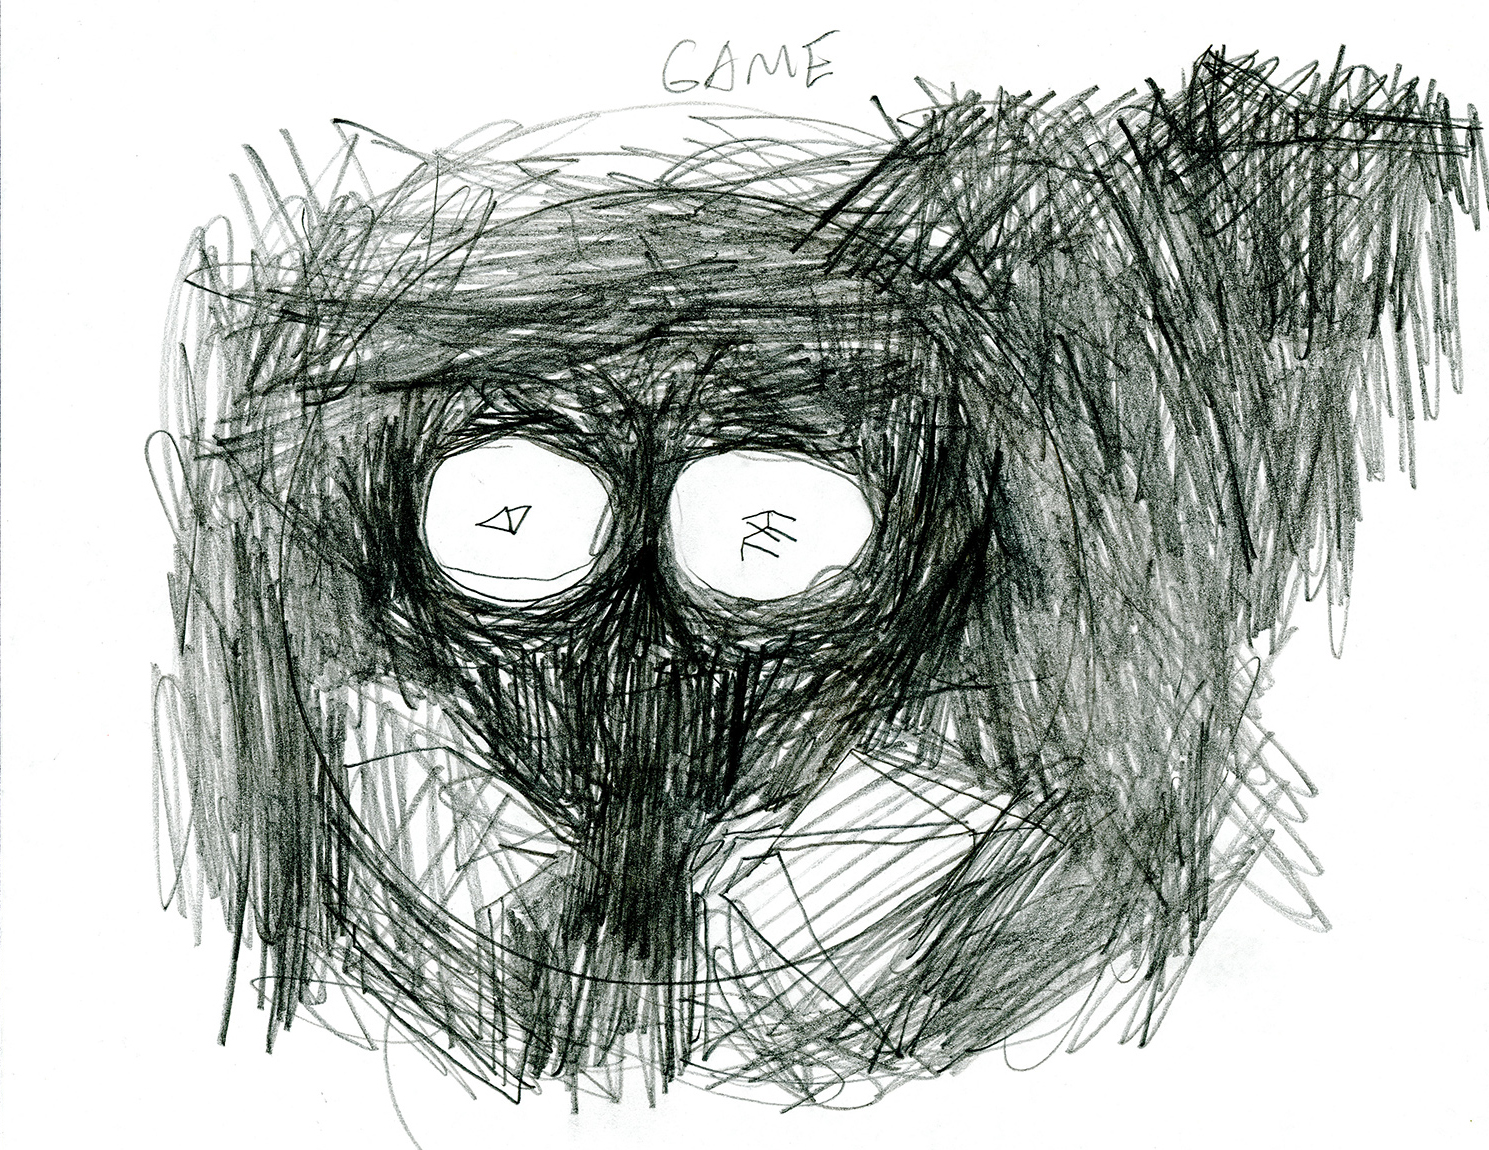 """Game_Real-vs-Fake . Graphite on paper. 8.5"""" x 11"""". 2014."""